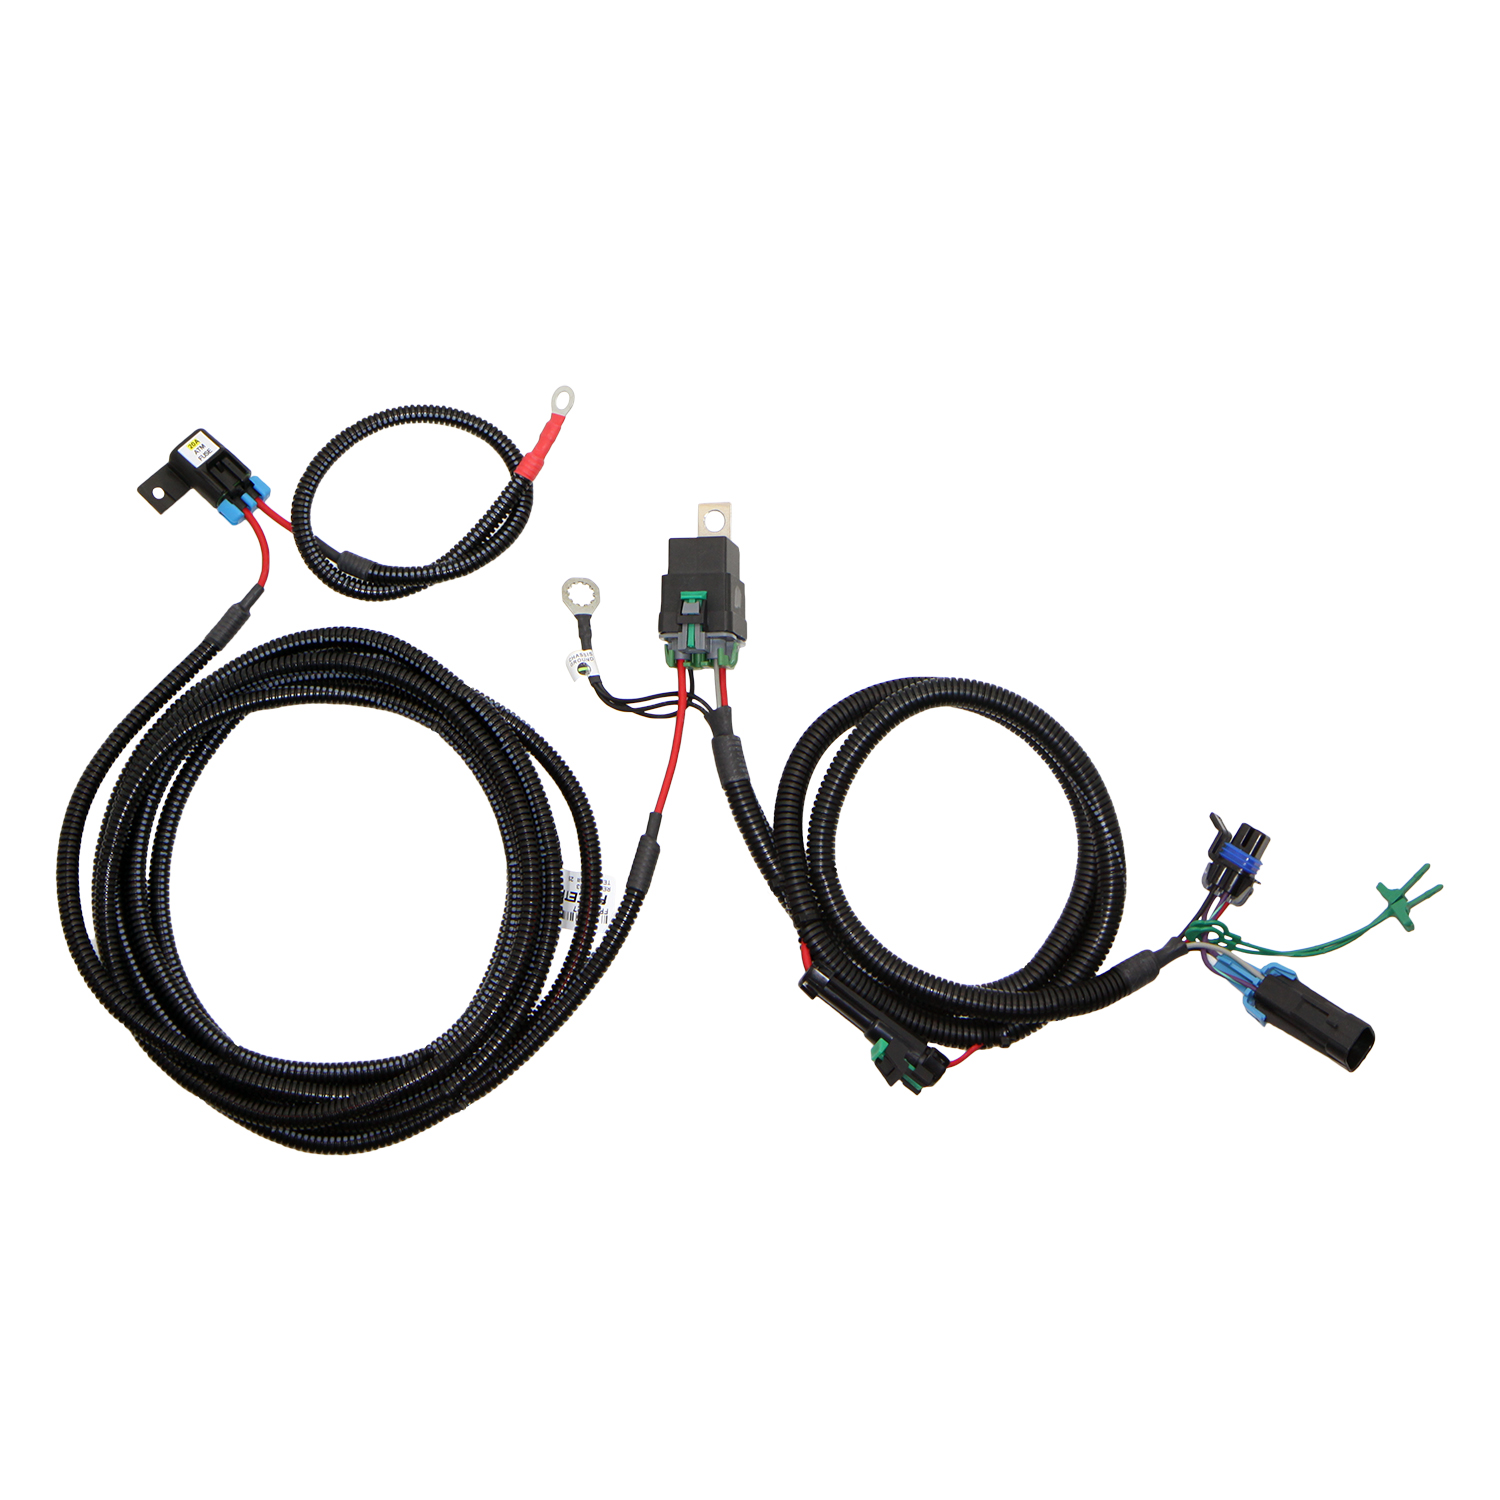 small resolution of cadillac cts v fuel pump wiring harness fpwh 027 fuel pump direct tech wiring diagrams 2008 cadillac cts